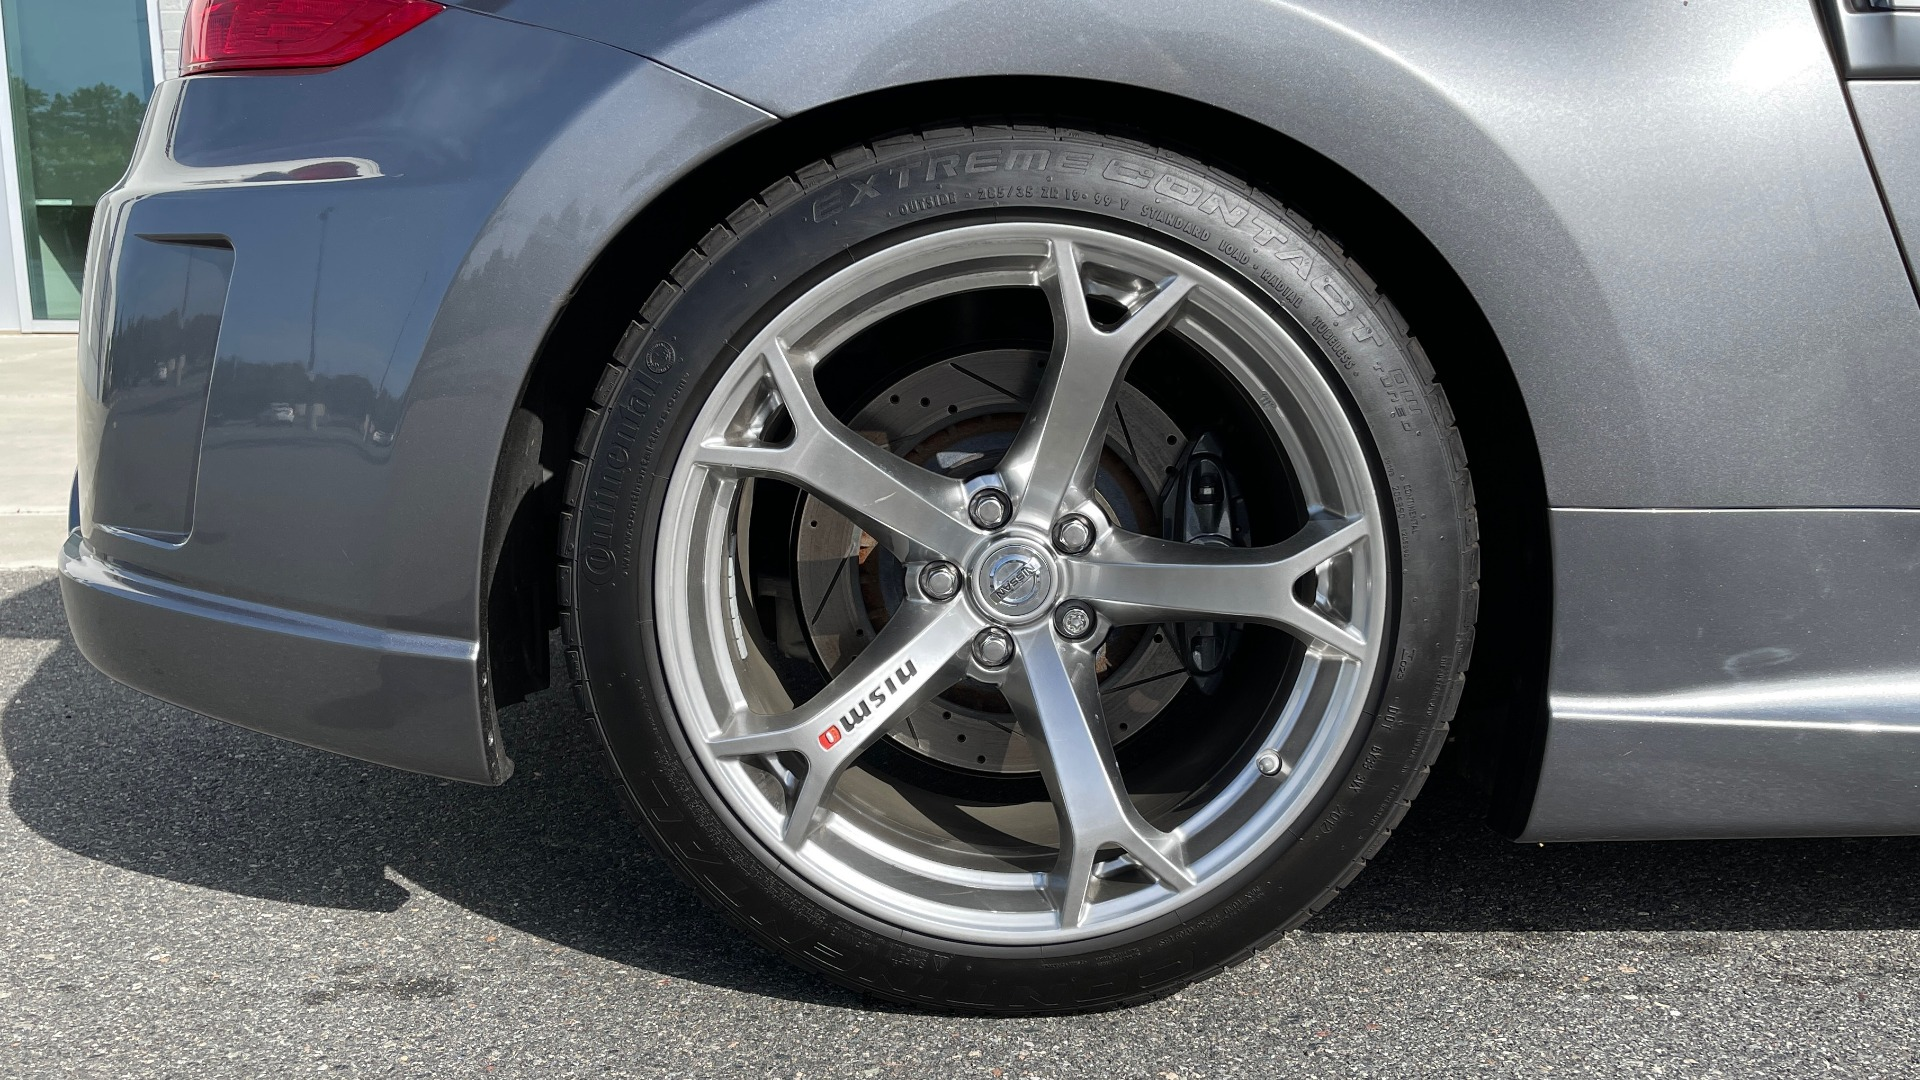 Used 2011 Nissan 370Z NISMO COUPE / 3.7L V6 / 6-SPD MAN / AUTO CLIMATE CONTROL for sale $32,995 at Formula Imports in Charlotte NC 28227 50